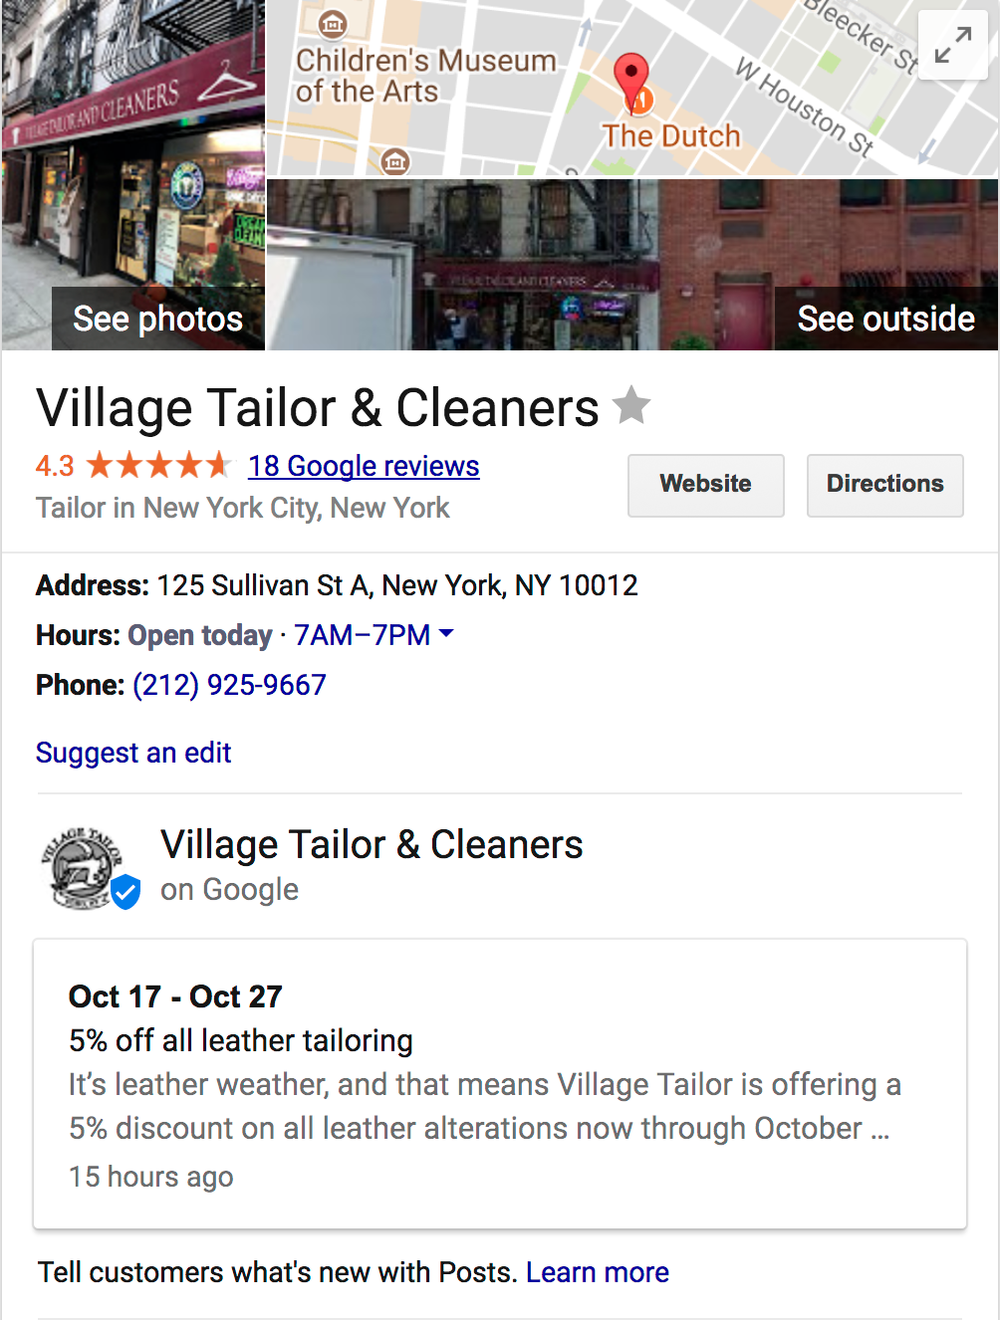 Village Tailor & Cleaner v2.png